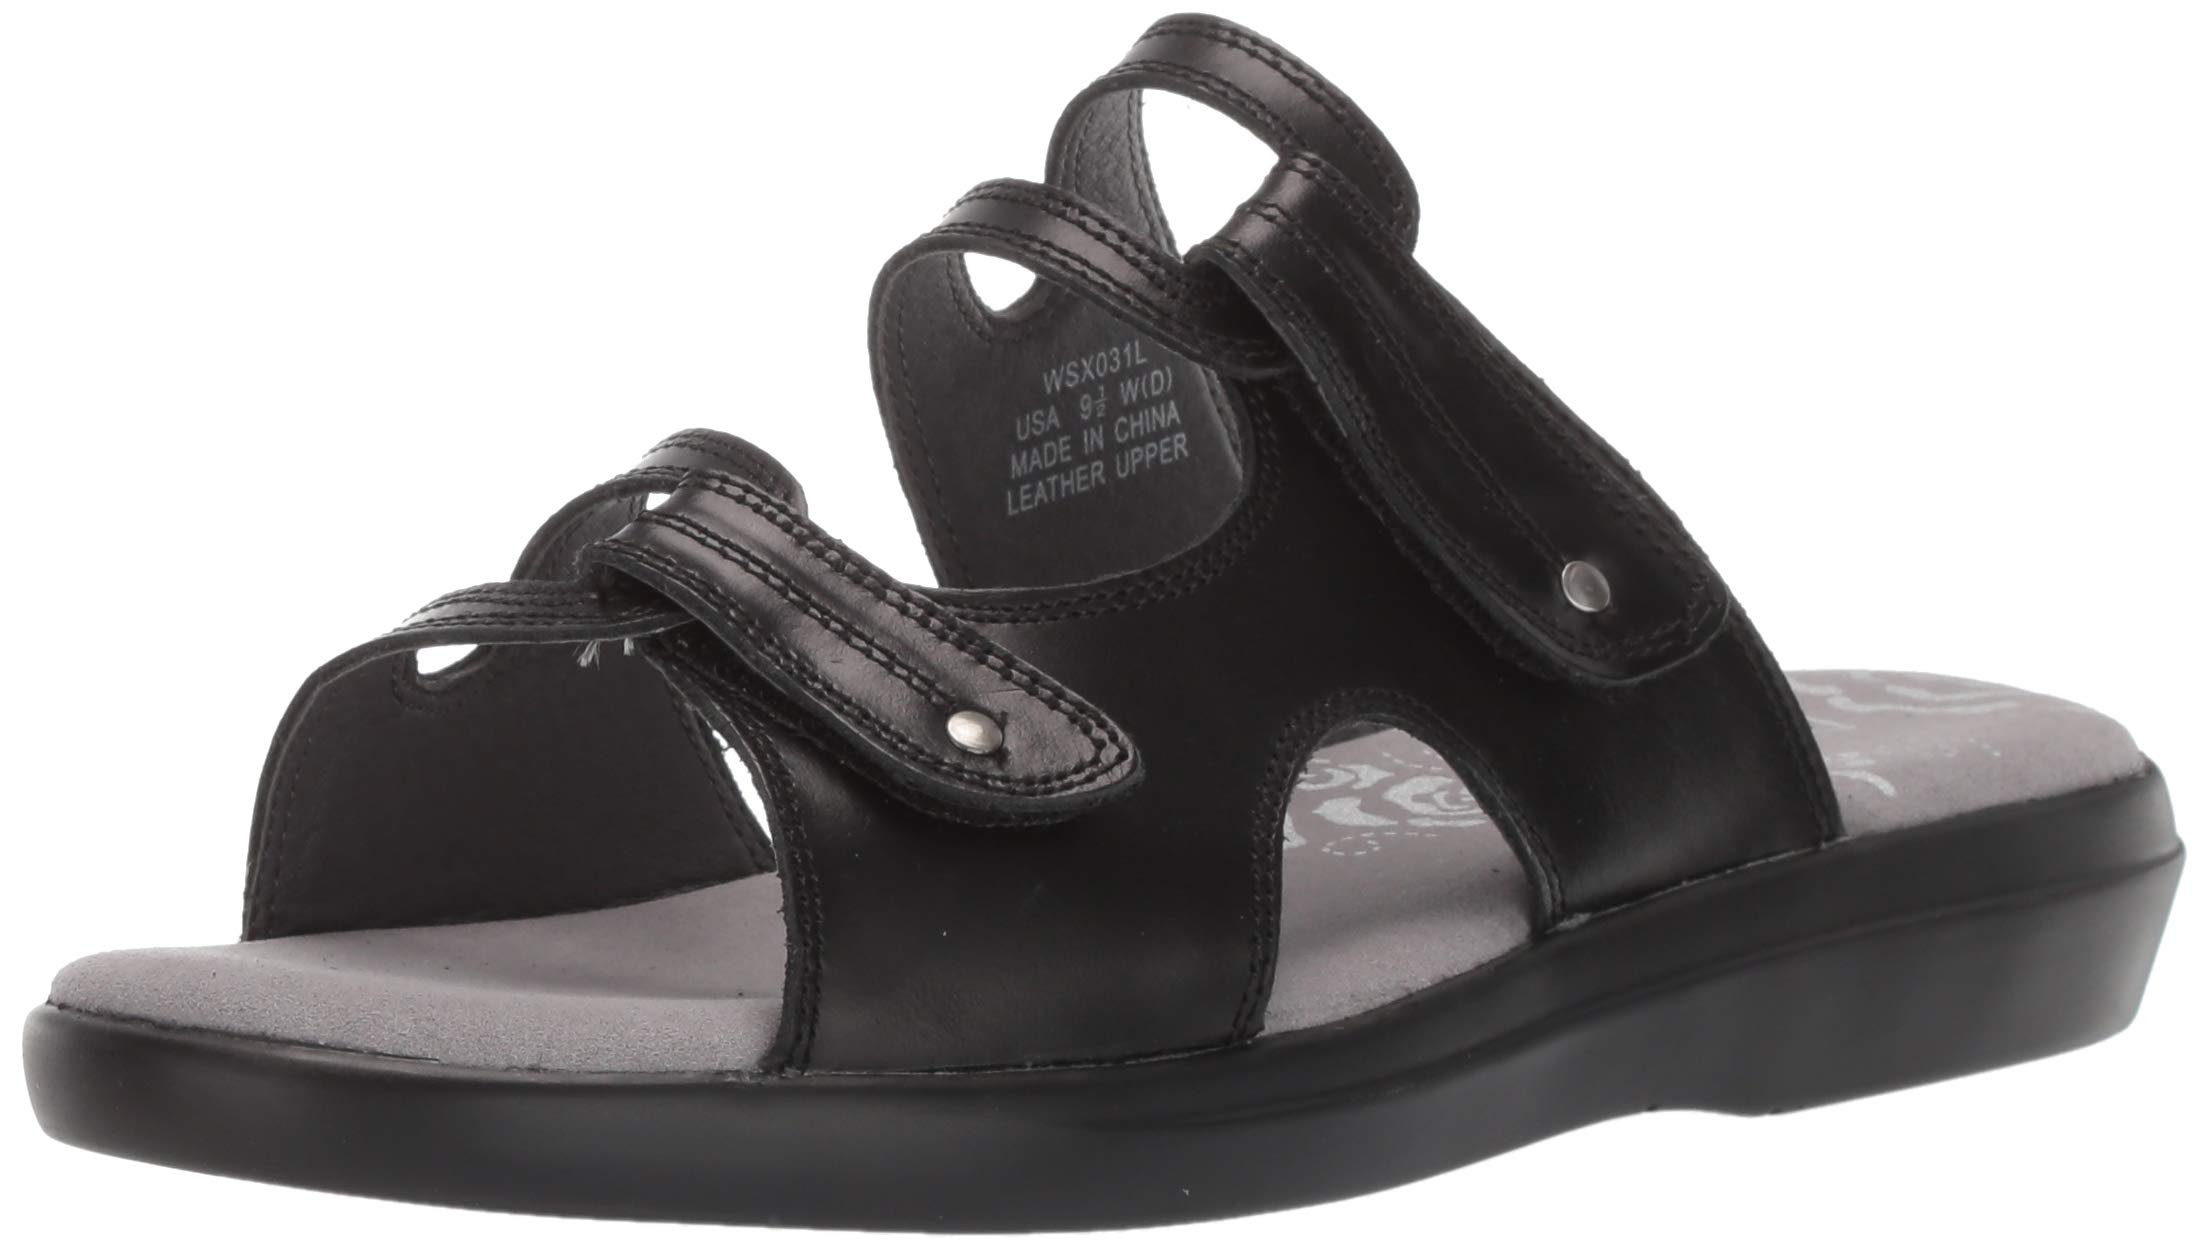 Propet Women's Marina Slide Sandal, Black, 7.5 D US by Propét